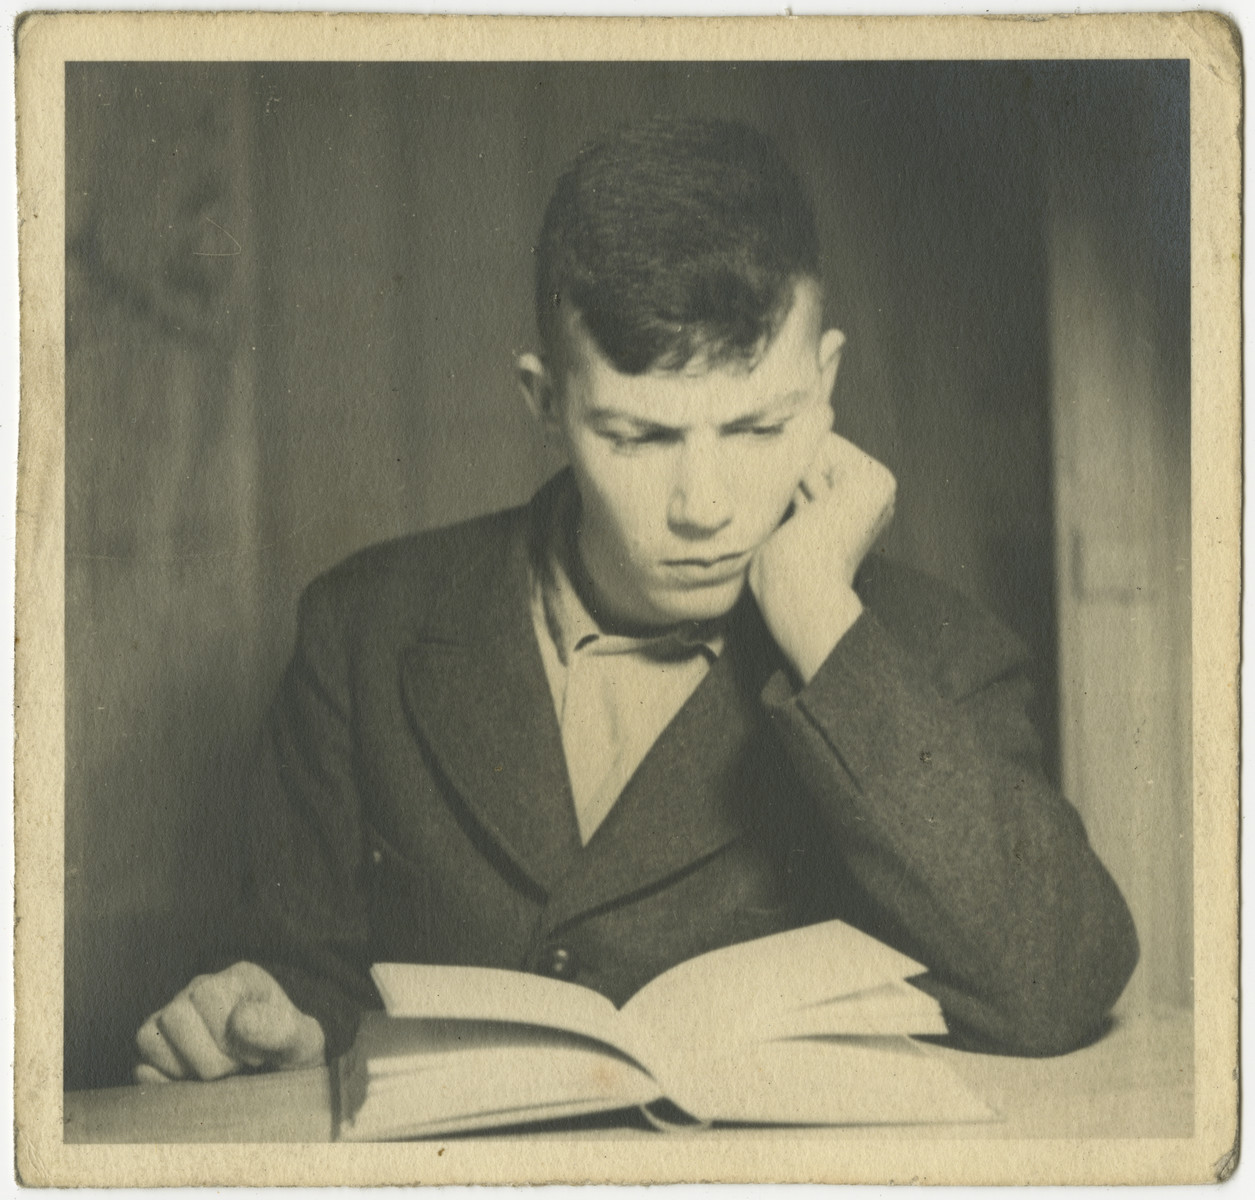 Carl Gans (now Gershon Kaddar) reads a book.